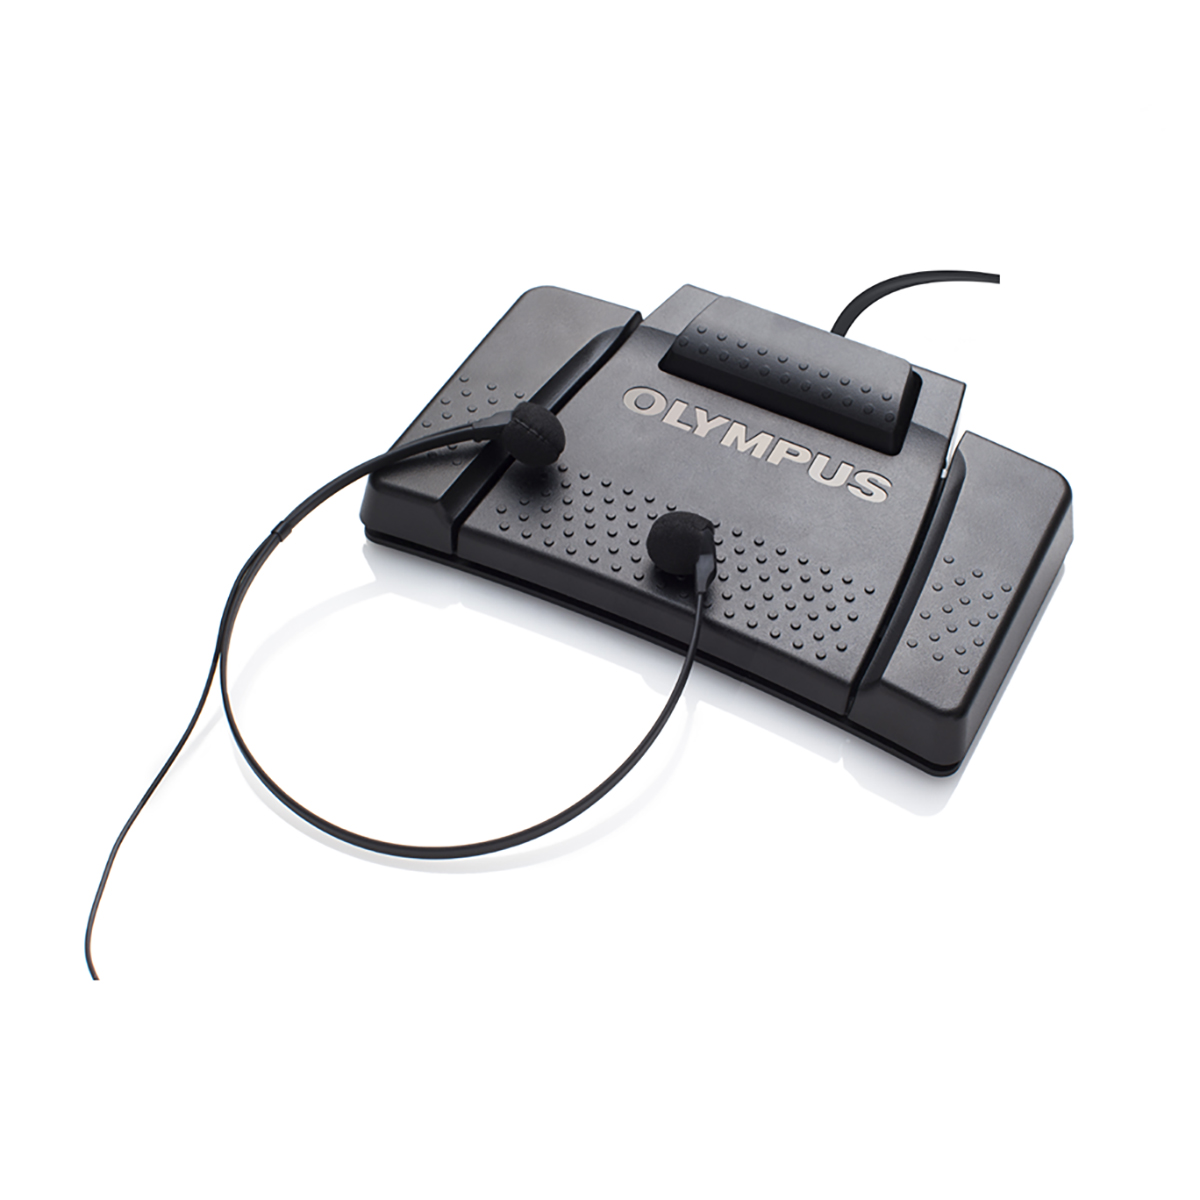 Foot Controls Olympus AS 9000 Transcription Kit 4 Button USB Foot pedal Black Ref V7410600E000